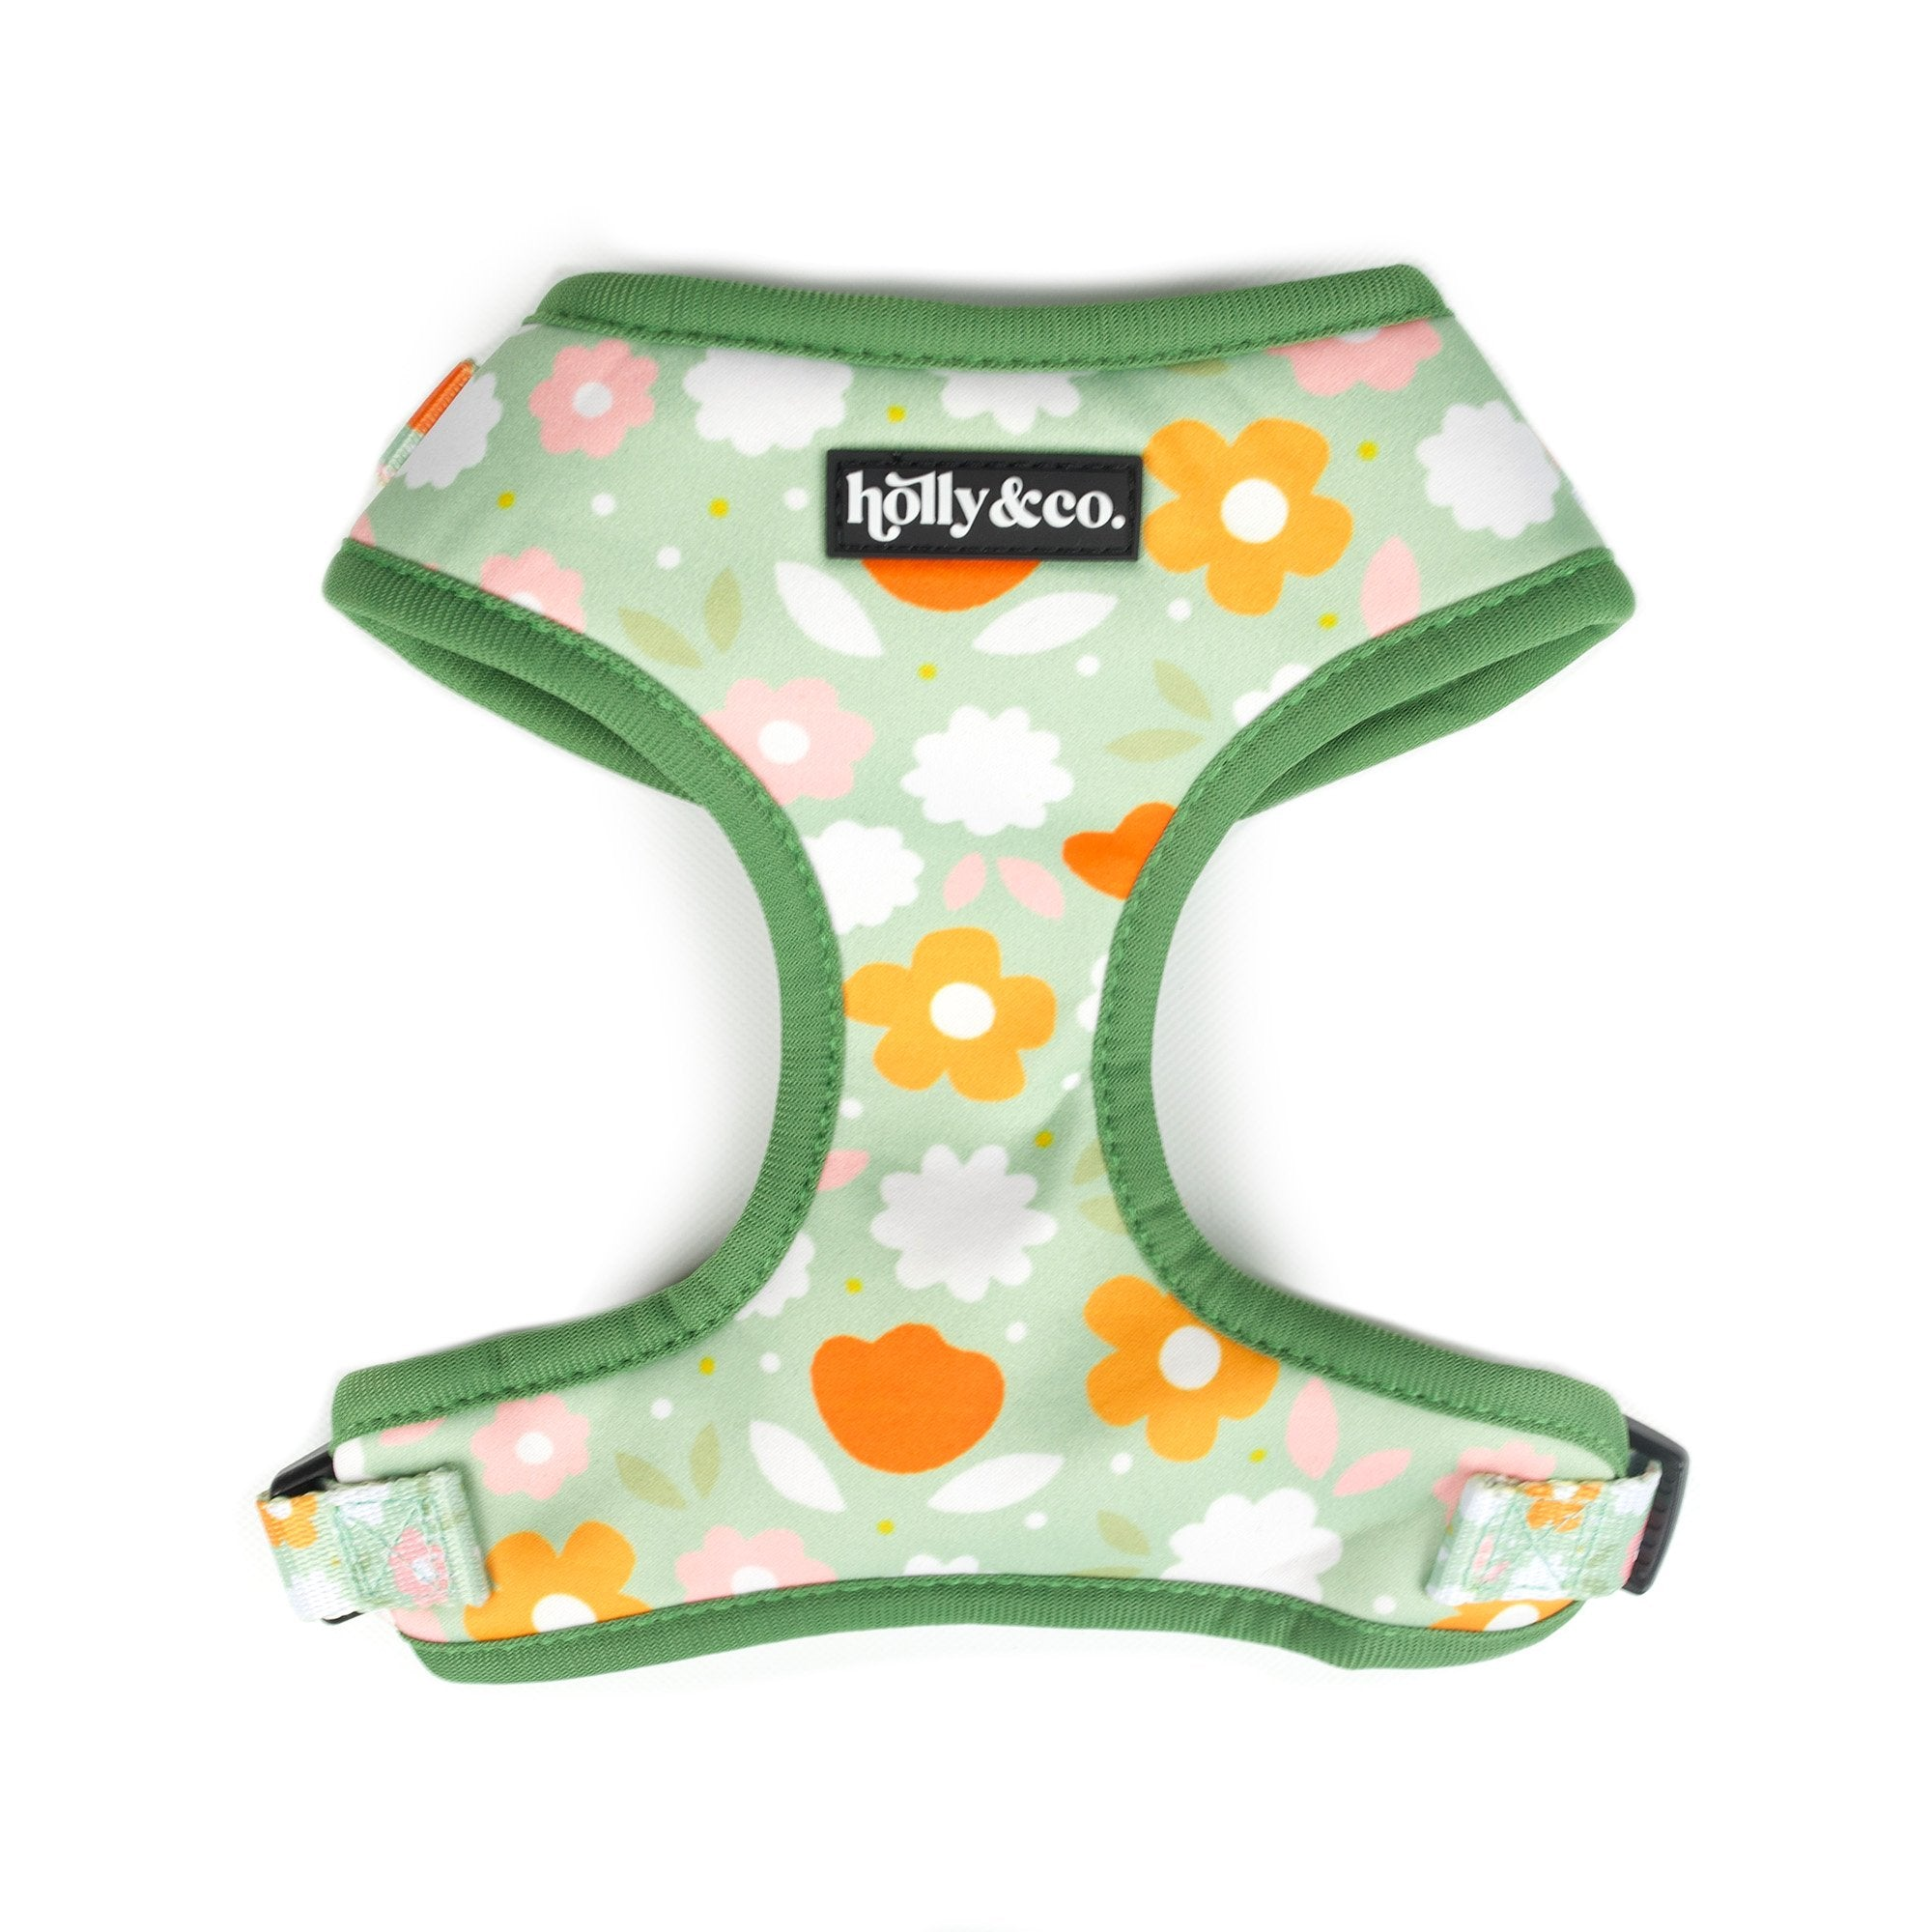 Holly & Co Flower Power Harness